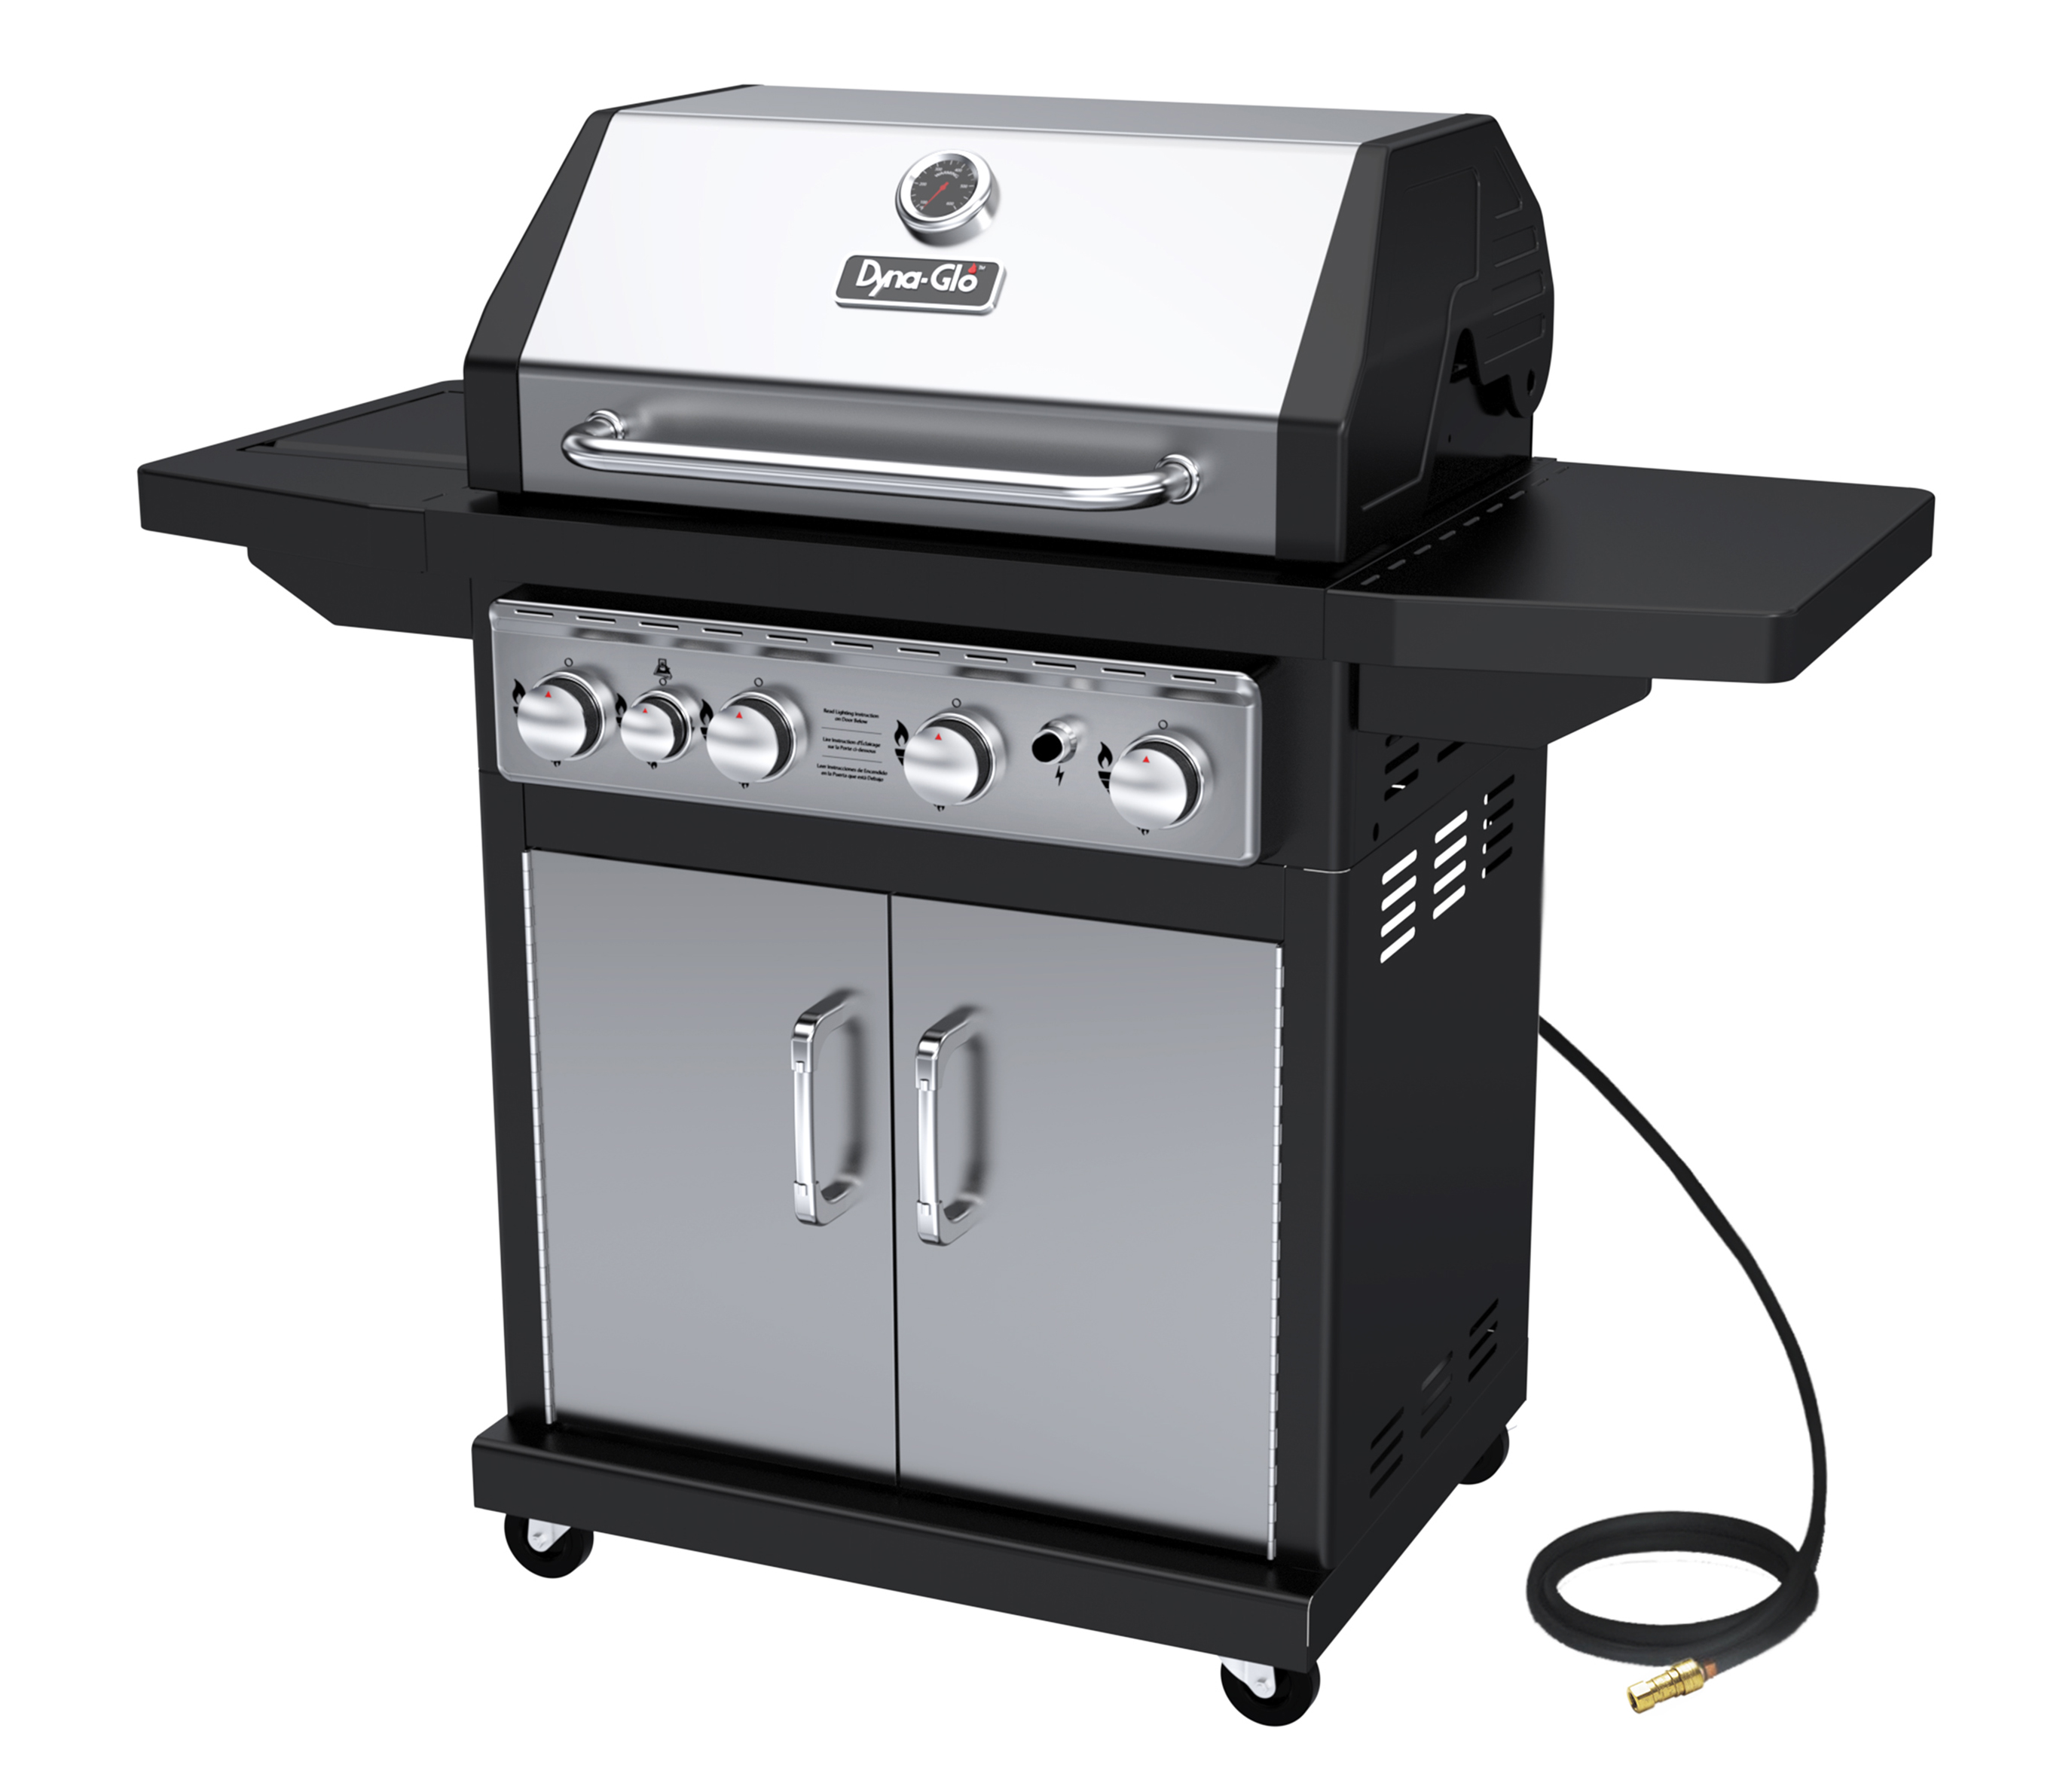 Dyna-Glo DGA480SSN-D 4 Burner Stainless Natural Gas Grill by Gas Grills